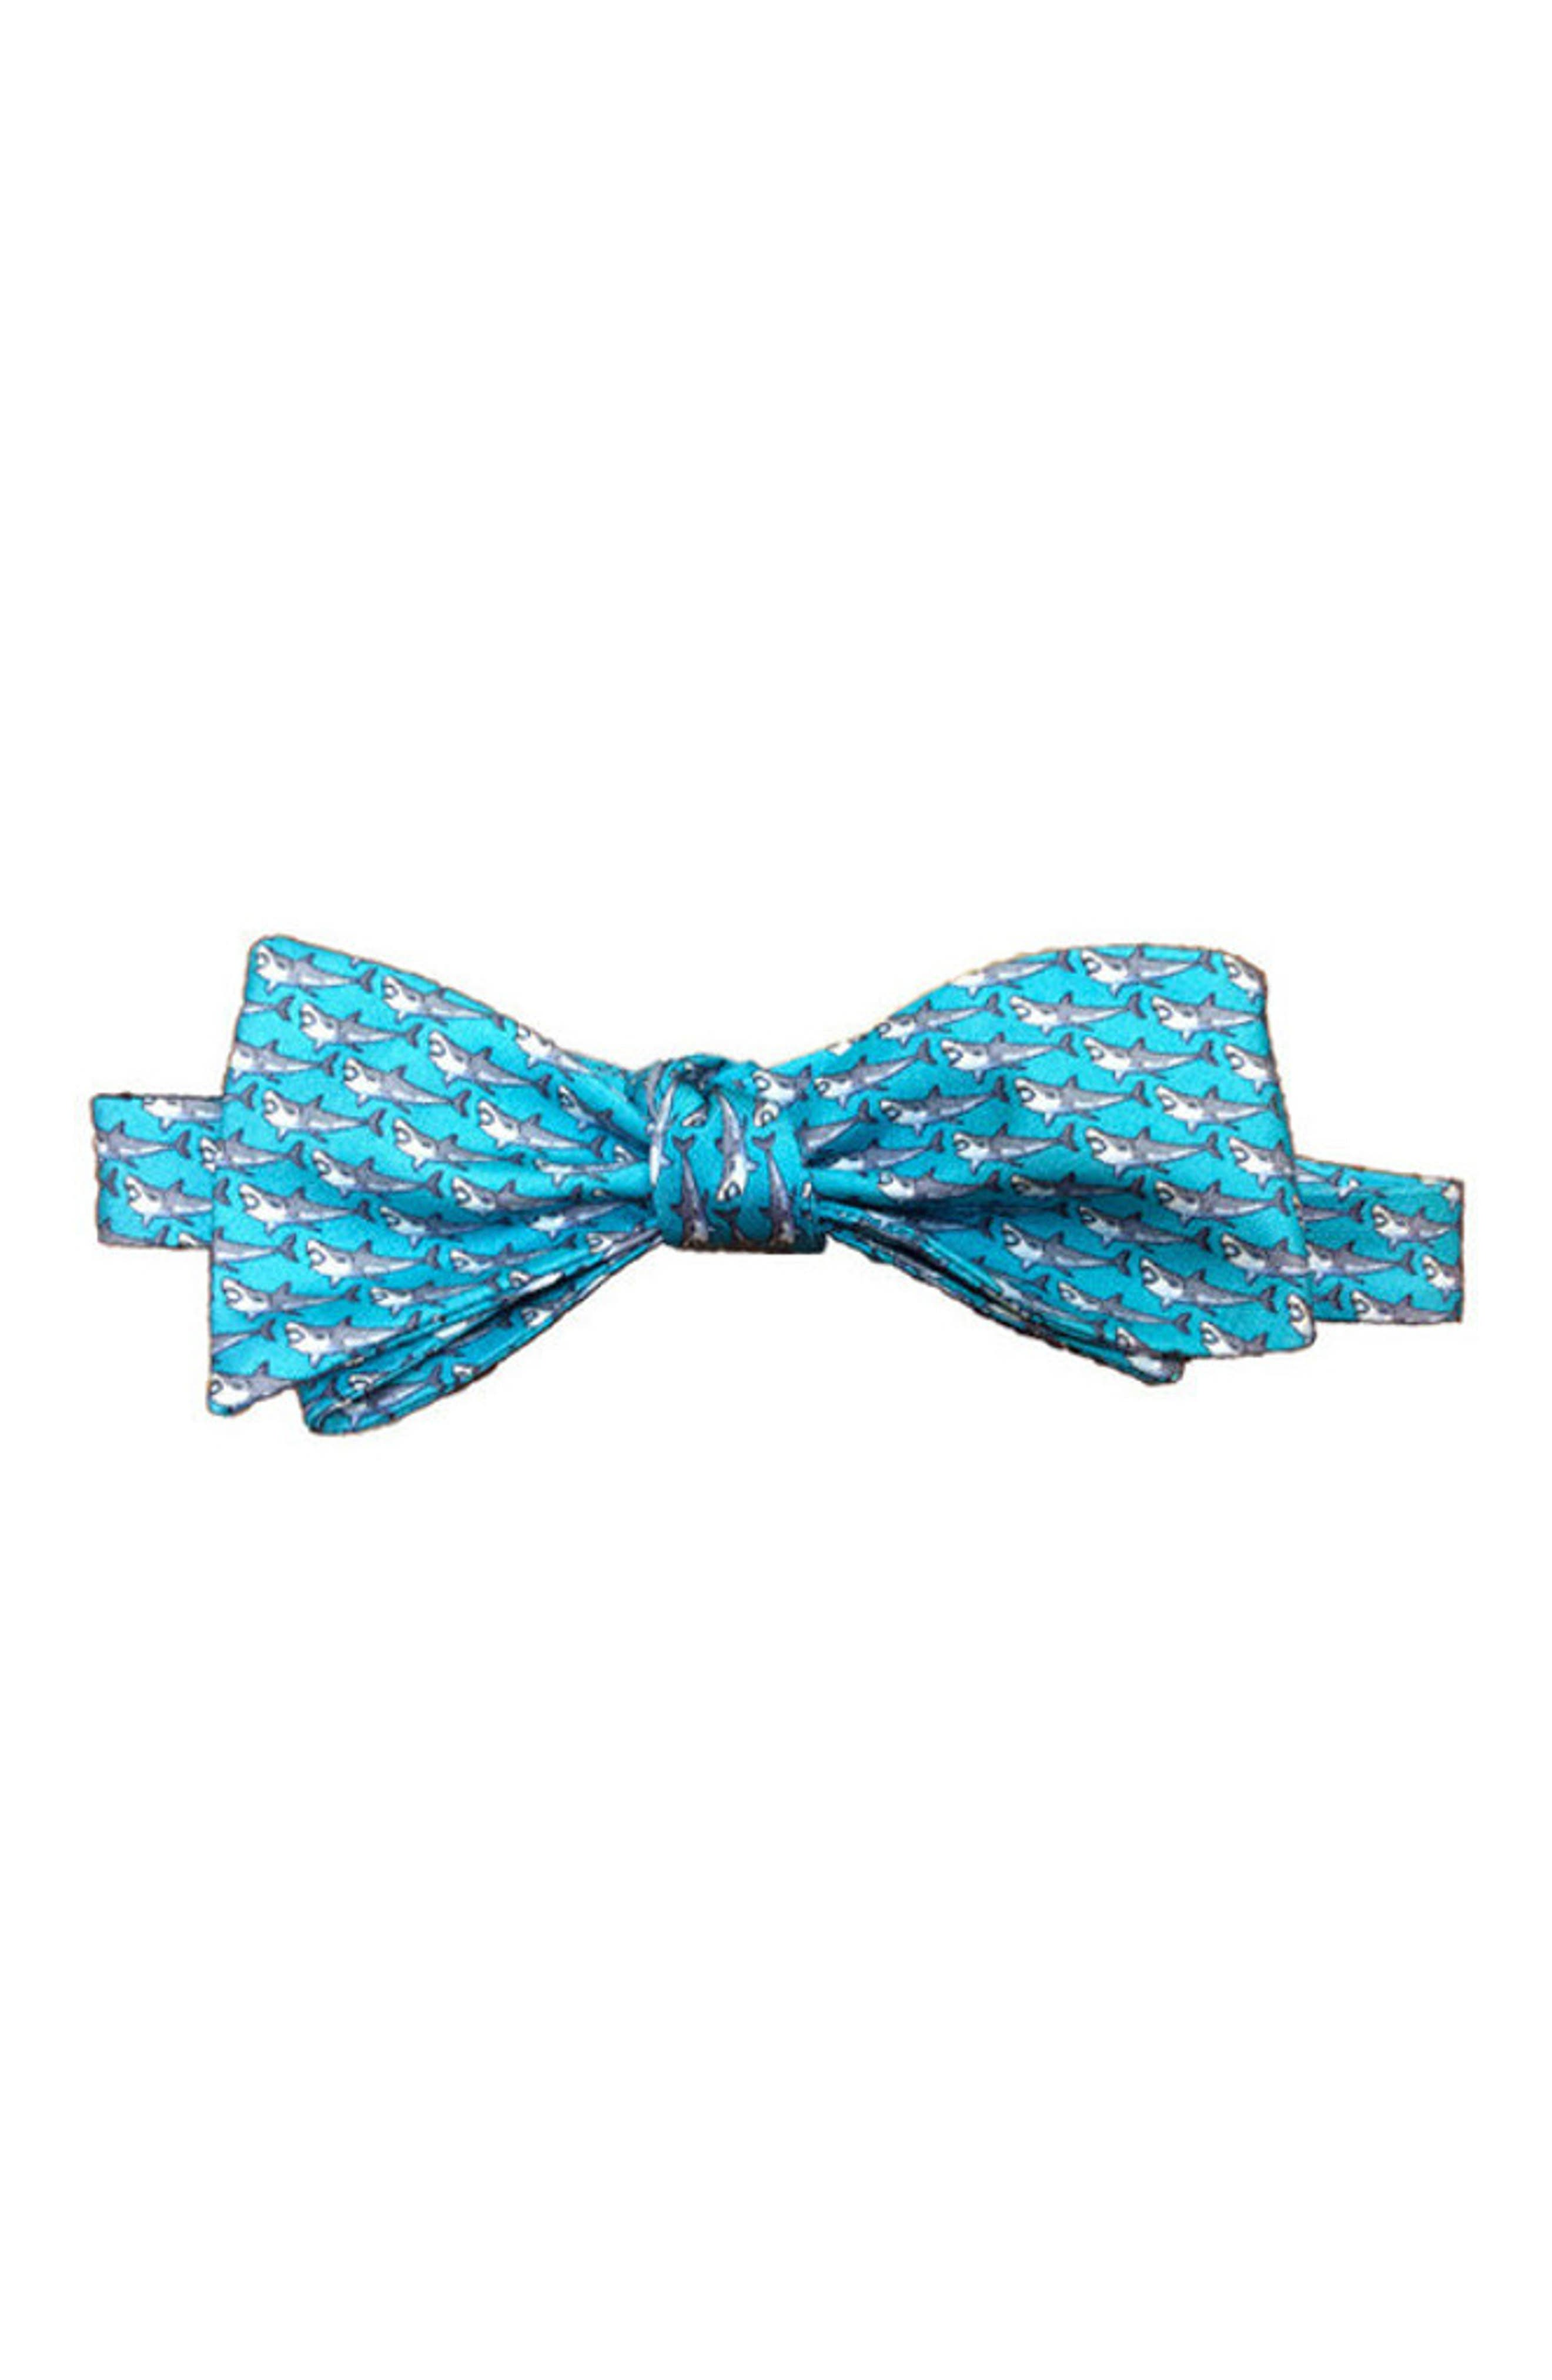 Shark Week Silk Bow Tie,                         Main,                         color, 420